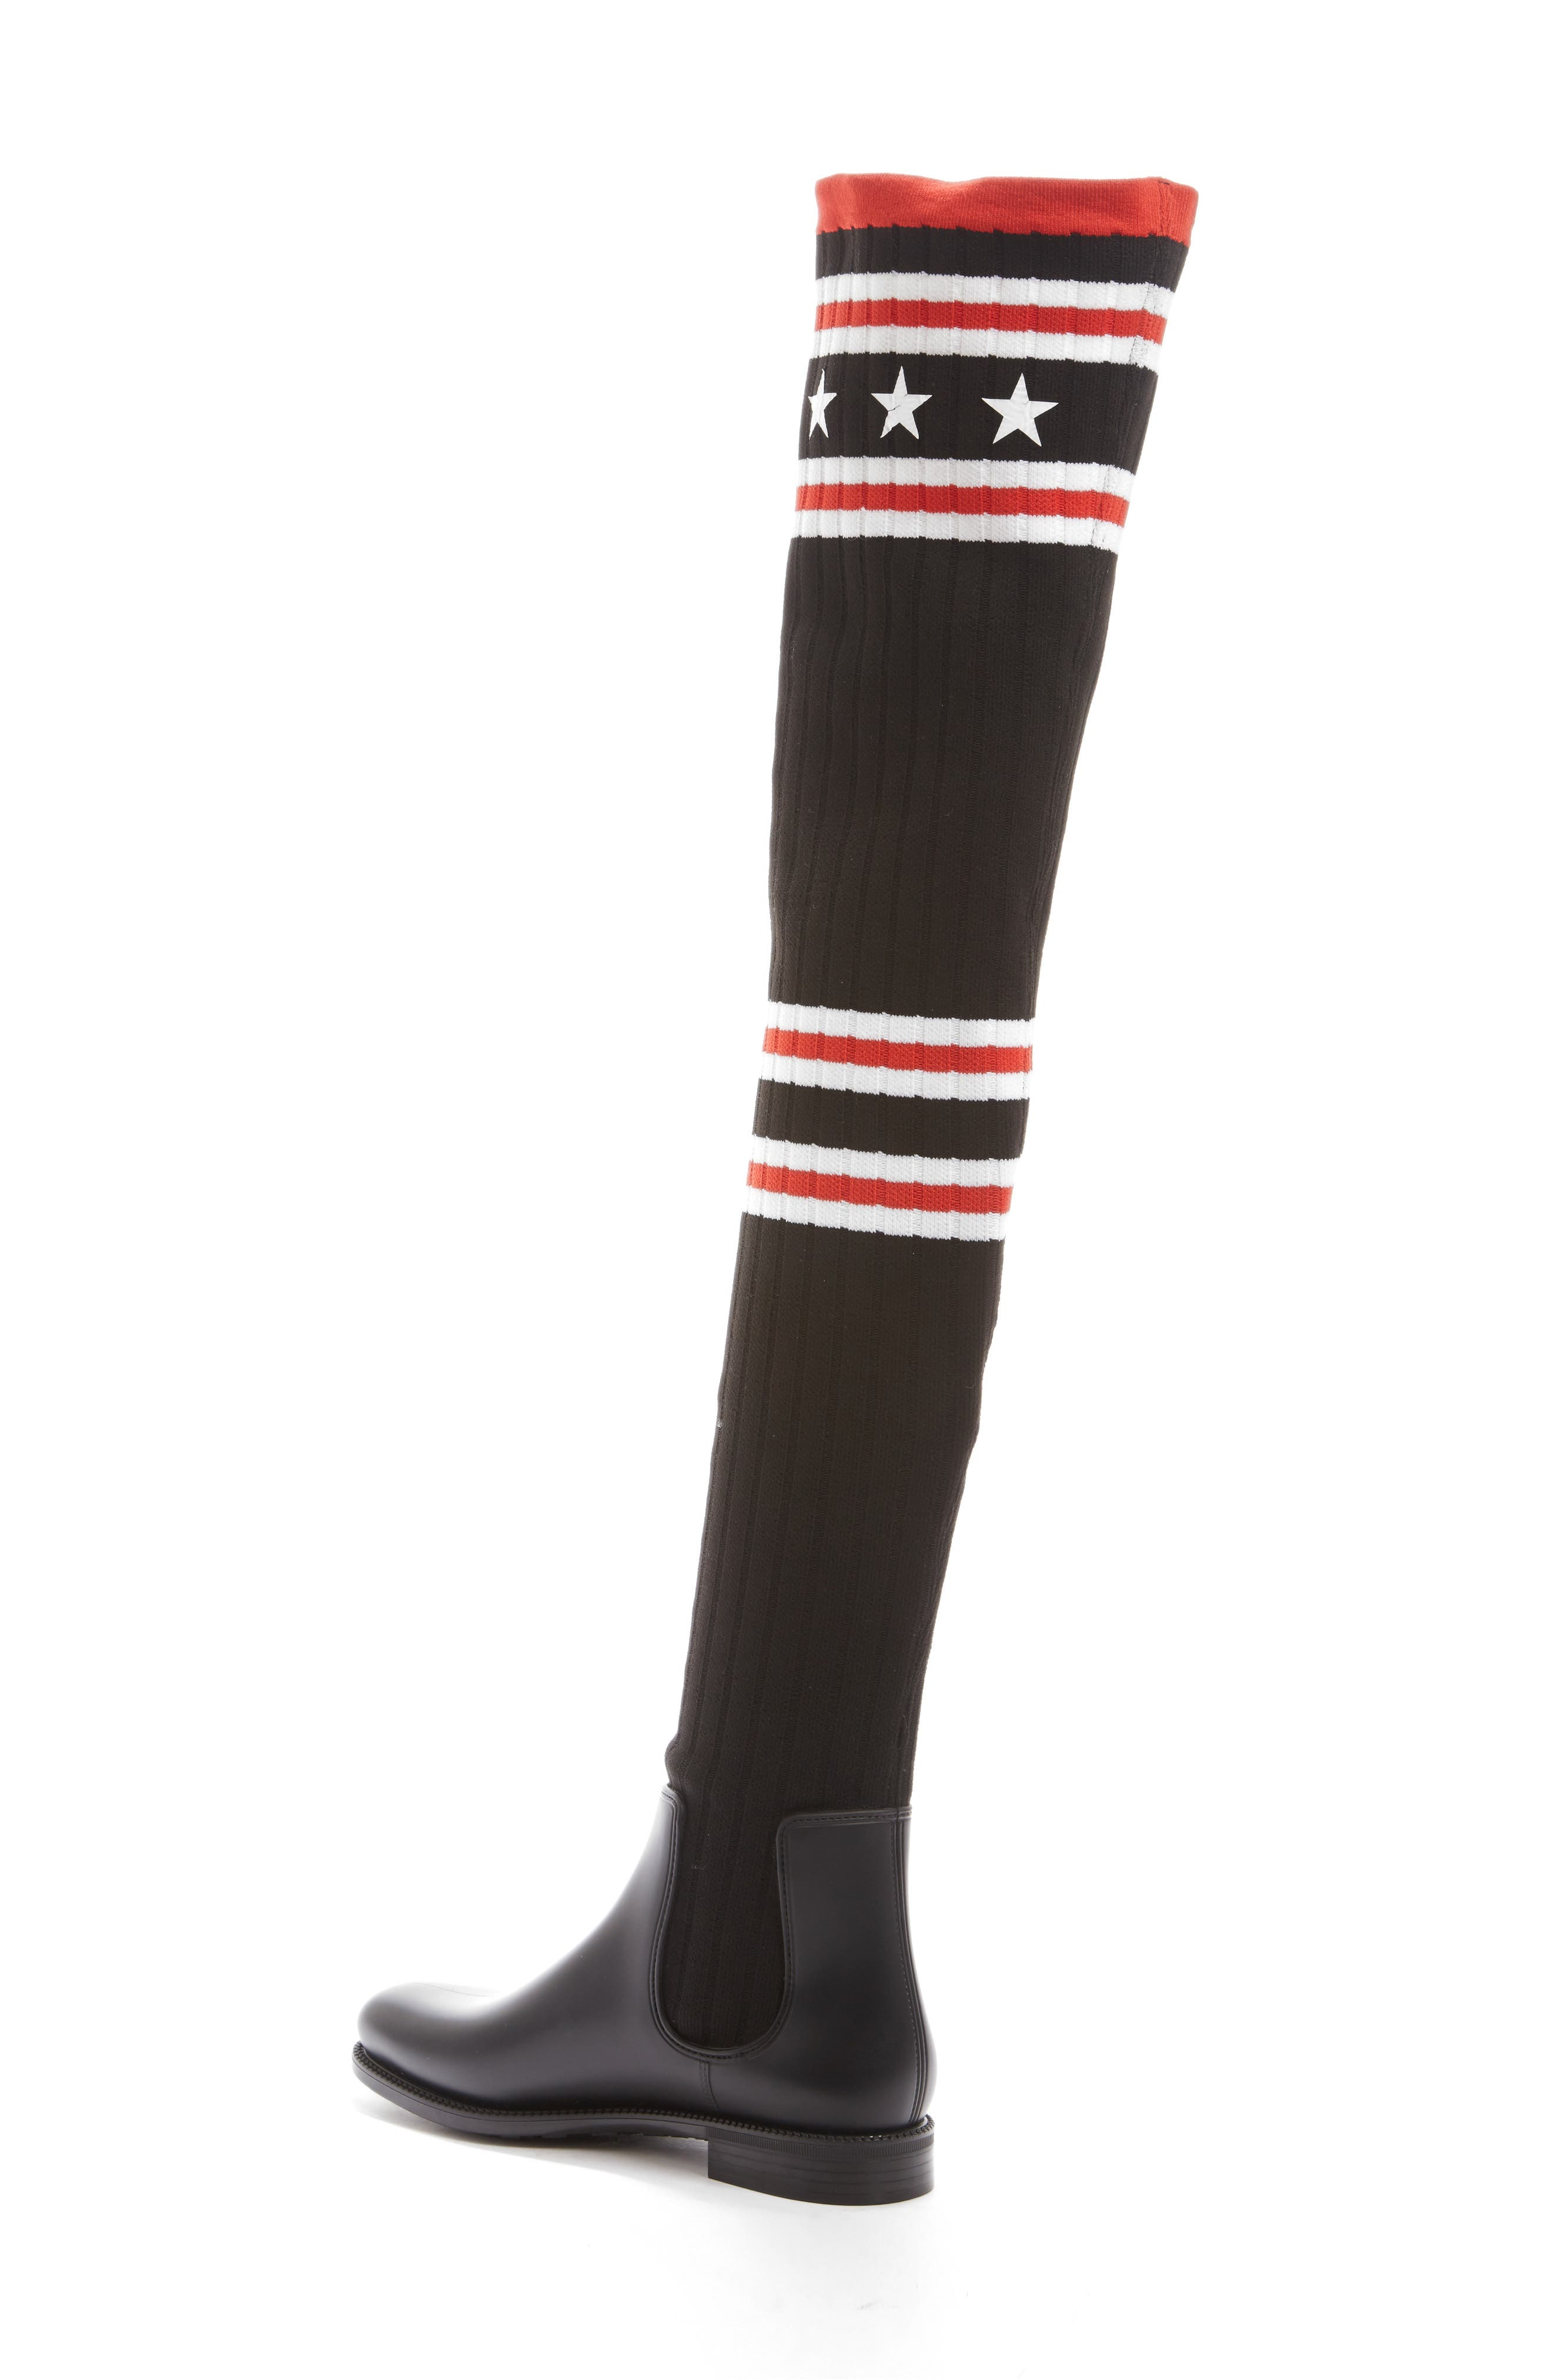 Storm Over the Knee Sock Boot,                             Alternate thumbnail 2, color,                             Black/ Red